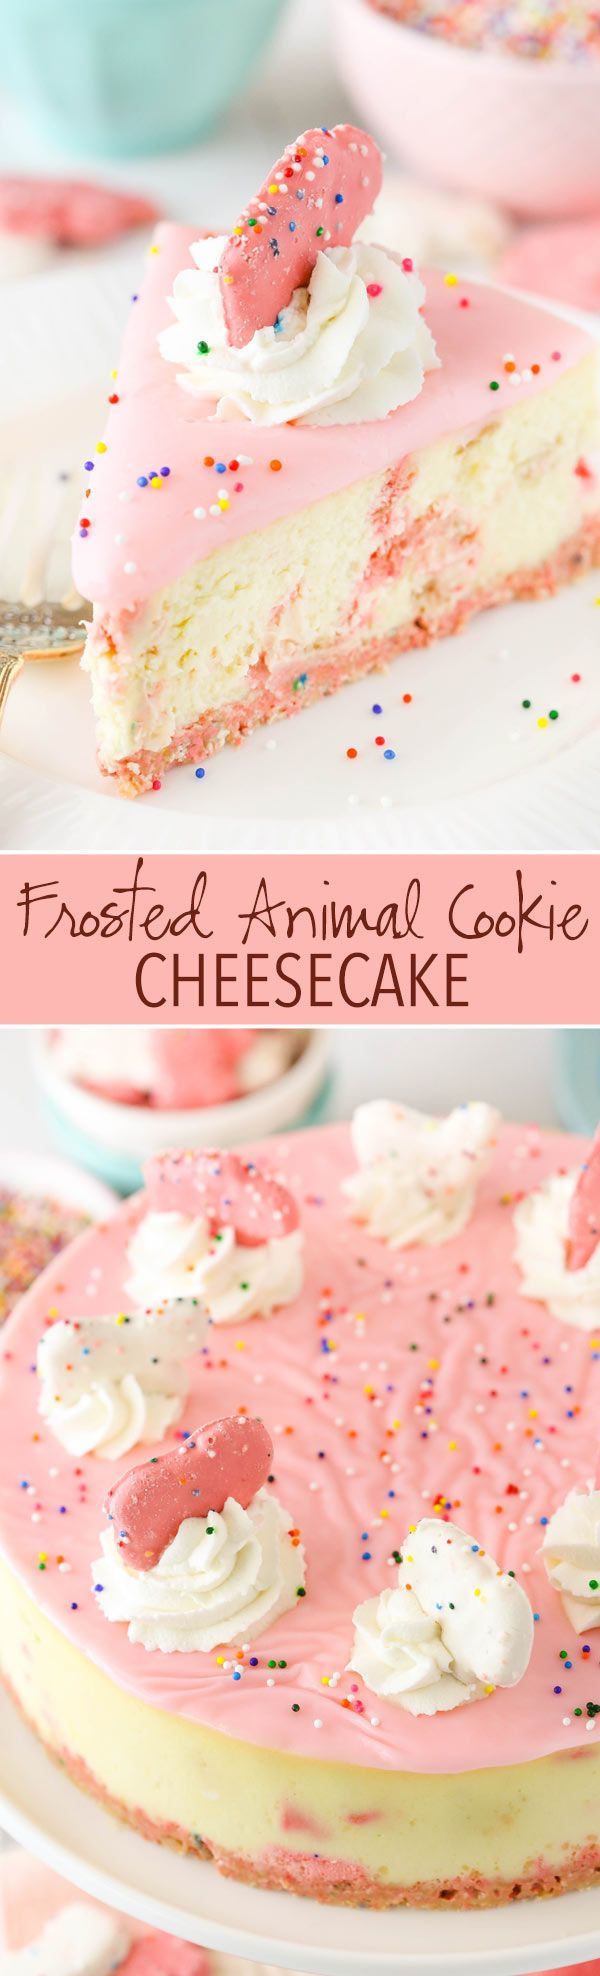 Frosted Animal Cookie Cheesecake - thick and cream vanilla cheesecake with frosted animal cookies in the crust and the filling!